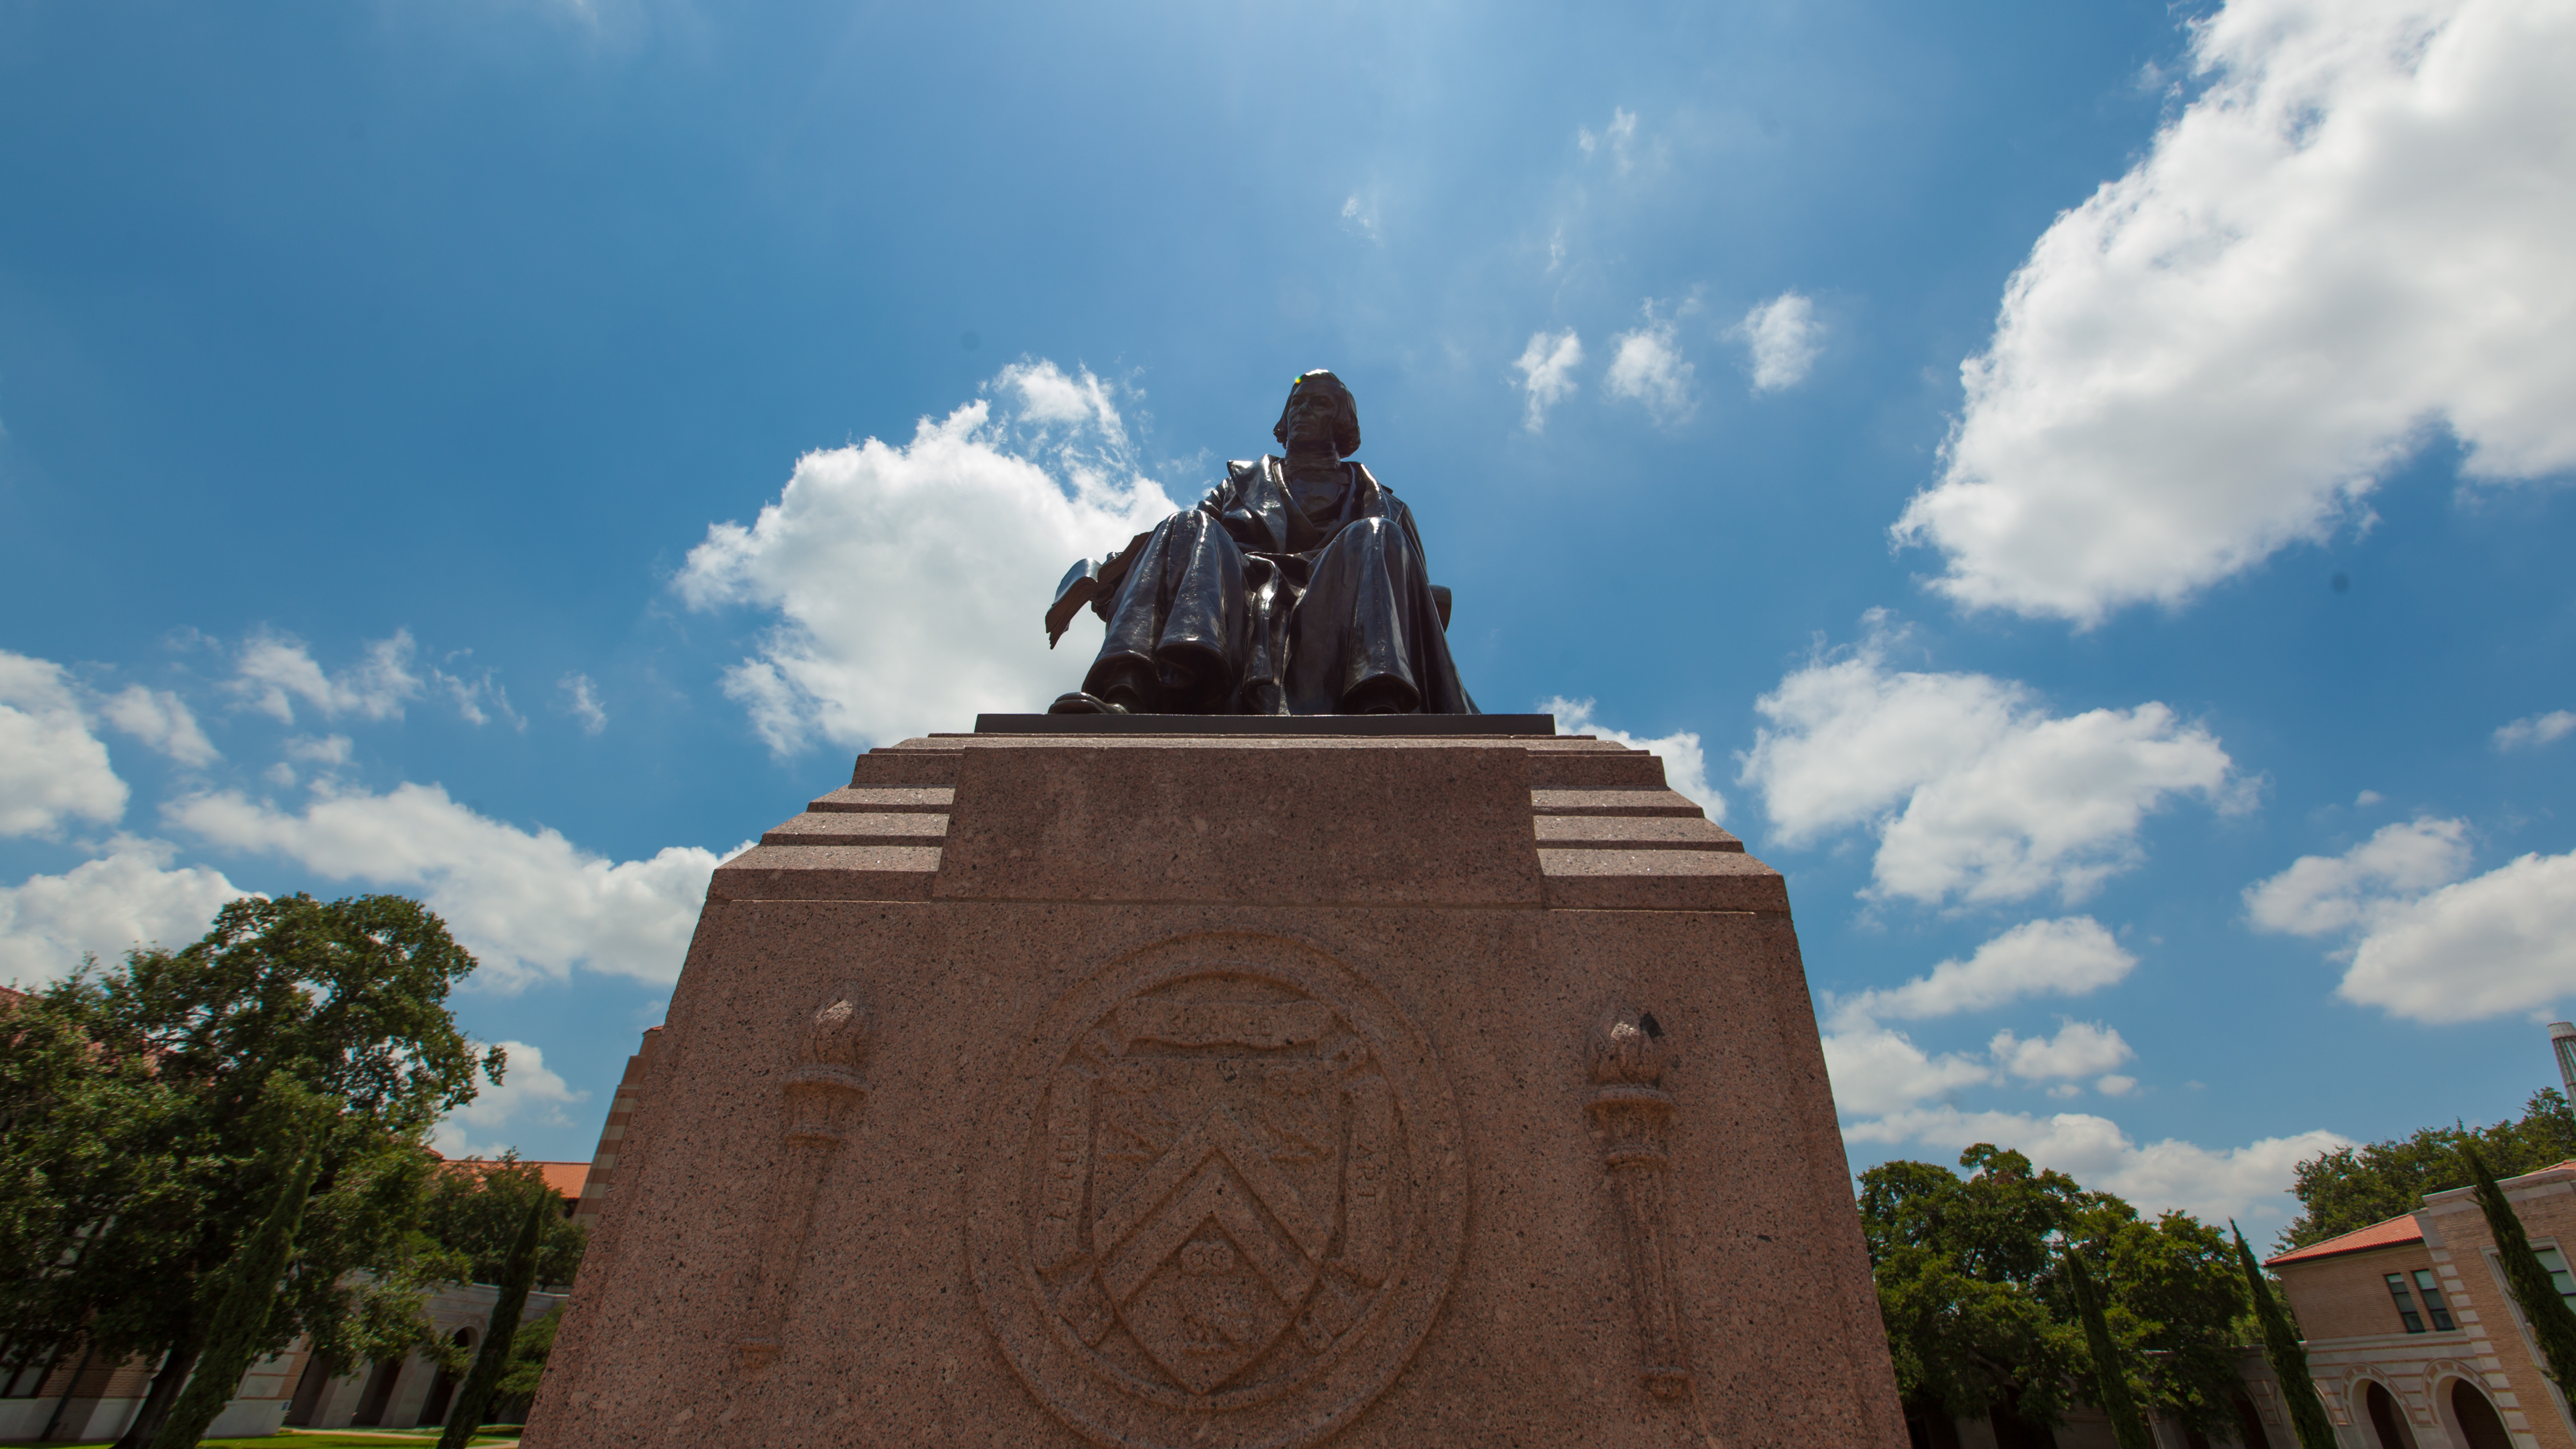 Rice University Stock Photography by Tendenci